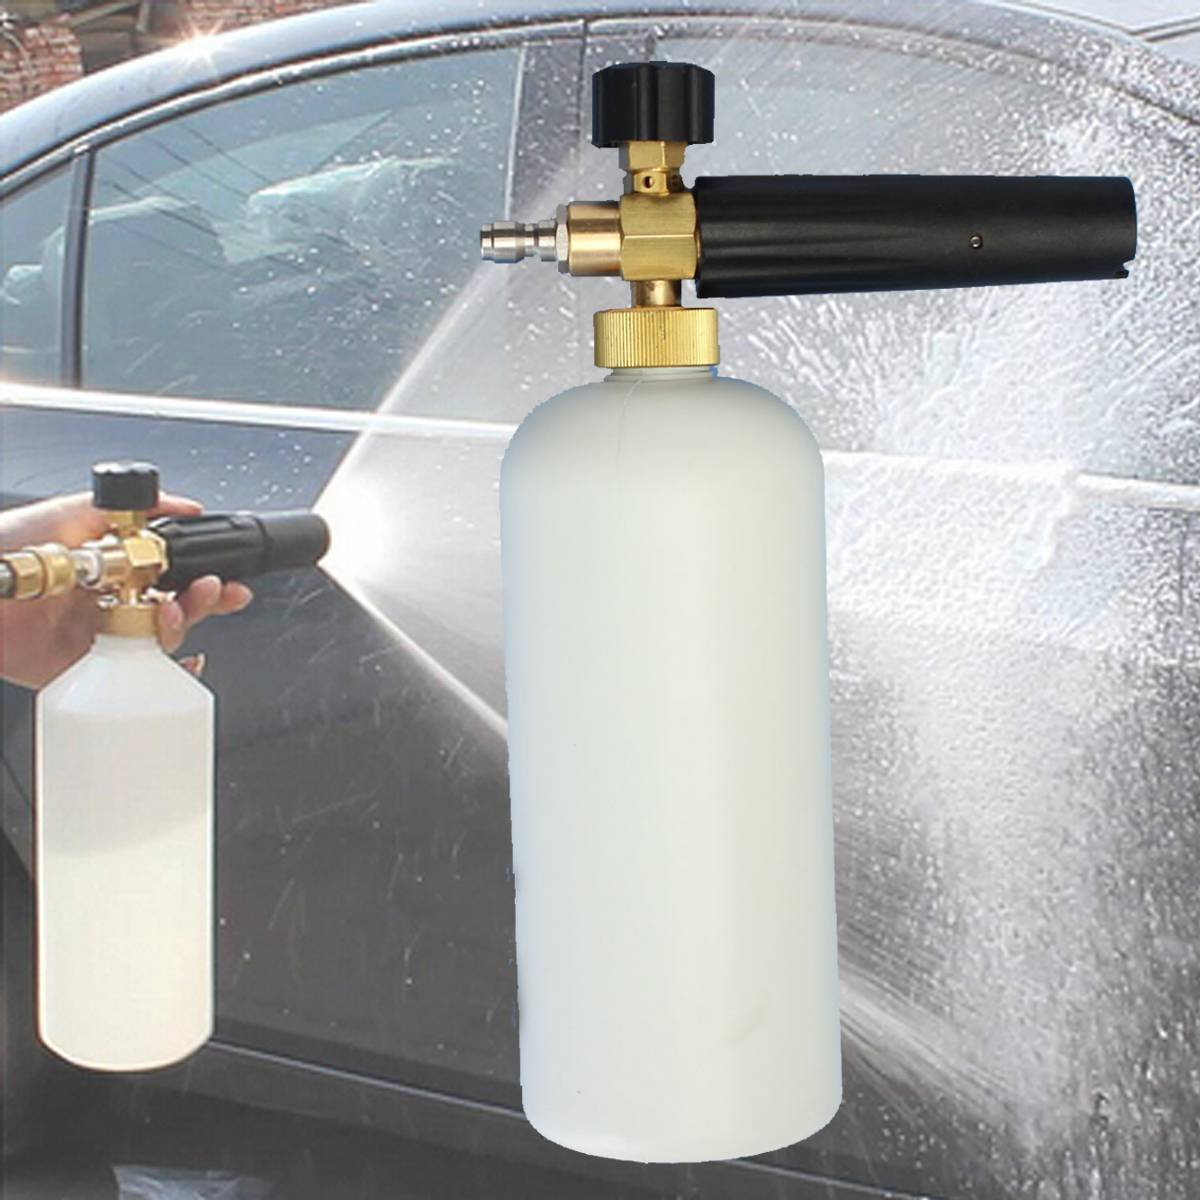 MATCC Adjustable Foam Cannon I Liter Bottle Snow Foam Lance With 1/4'' Quick Connector Foam Blaster for Pressure Washer Gun by MATCC (Image #2)